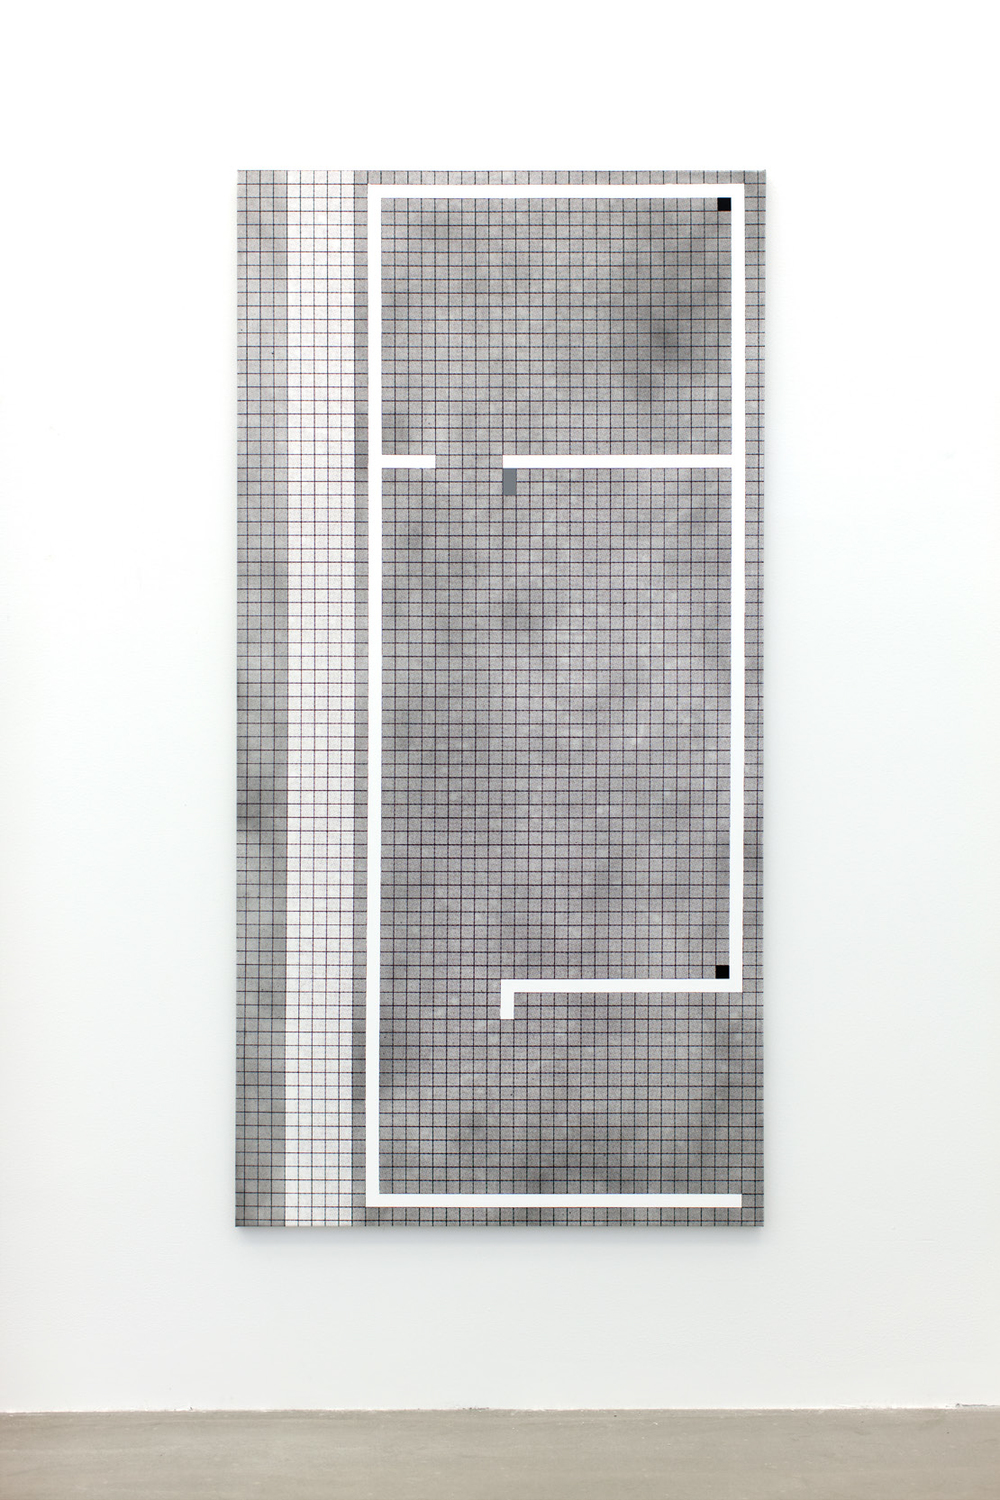 Jan S. Hansen: 'Grid', 2016, screenprint, enamel and acrylic on canvas, 100 x 200 cm